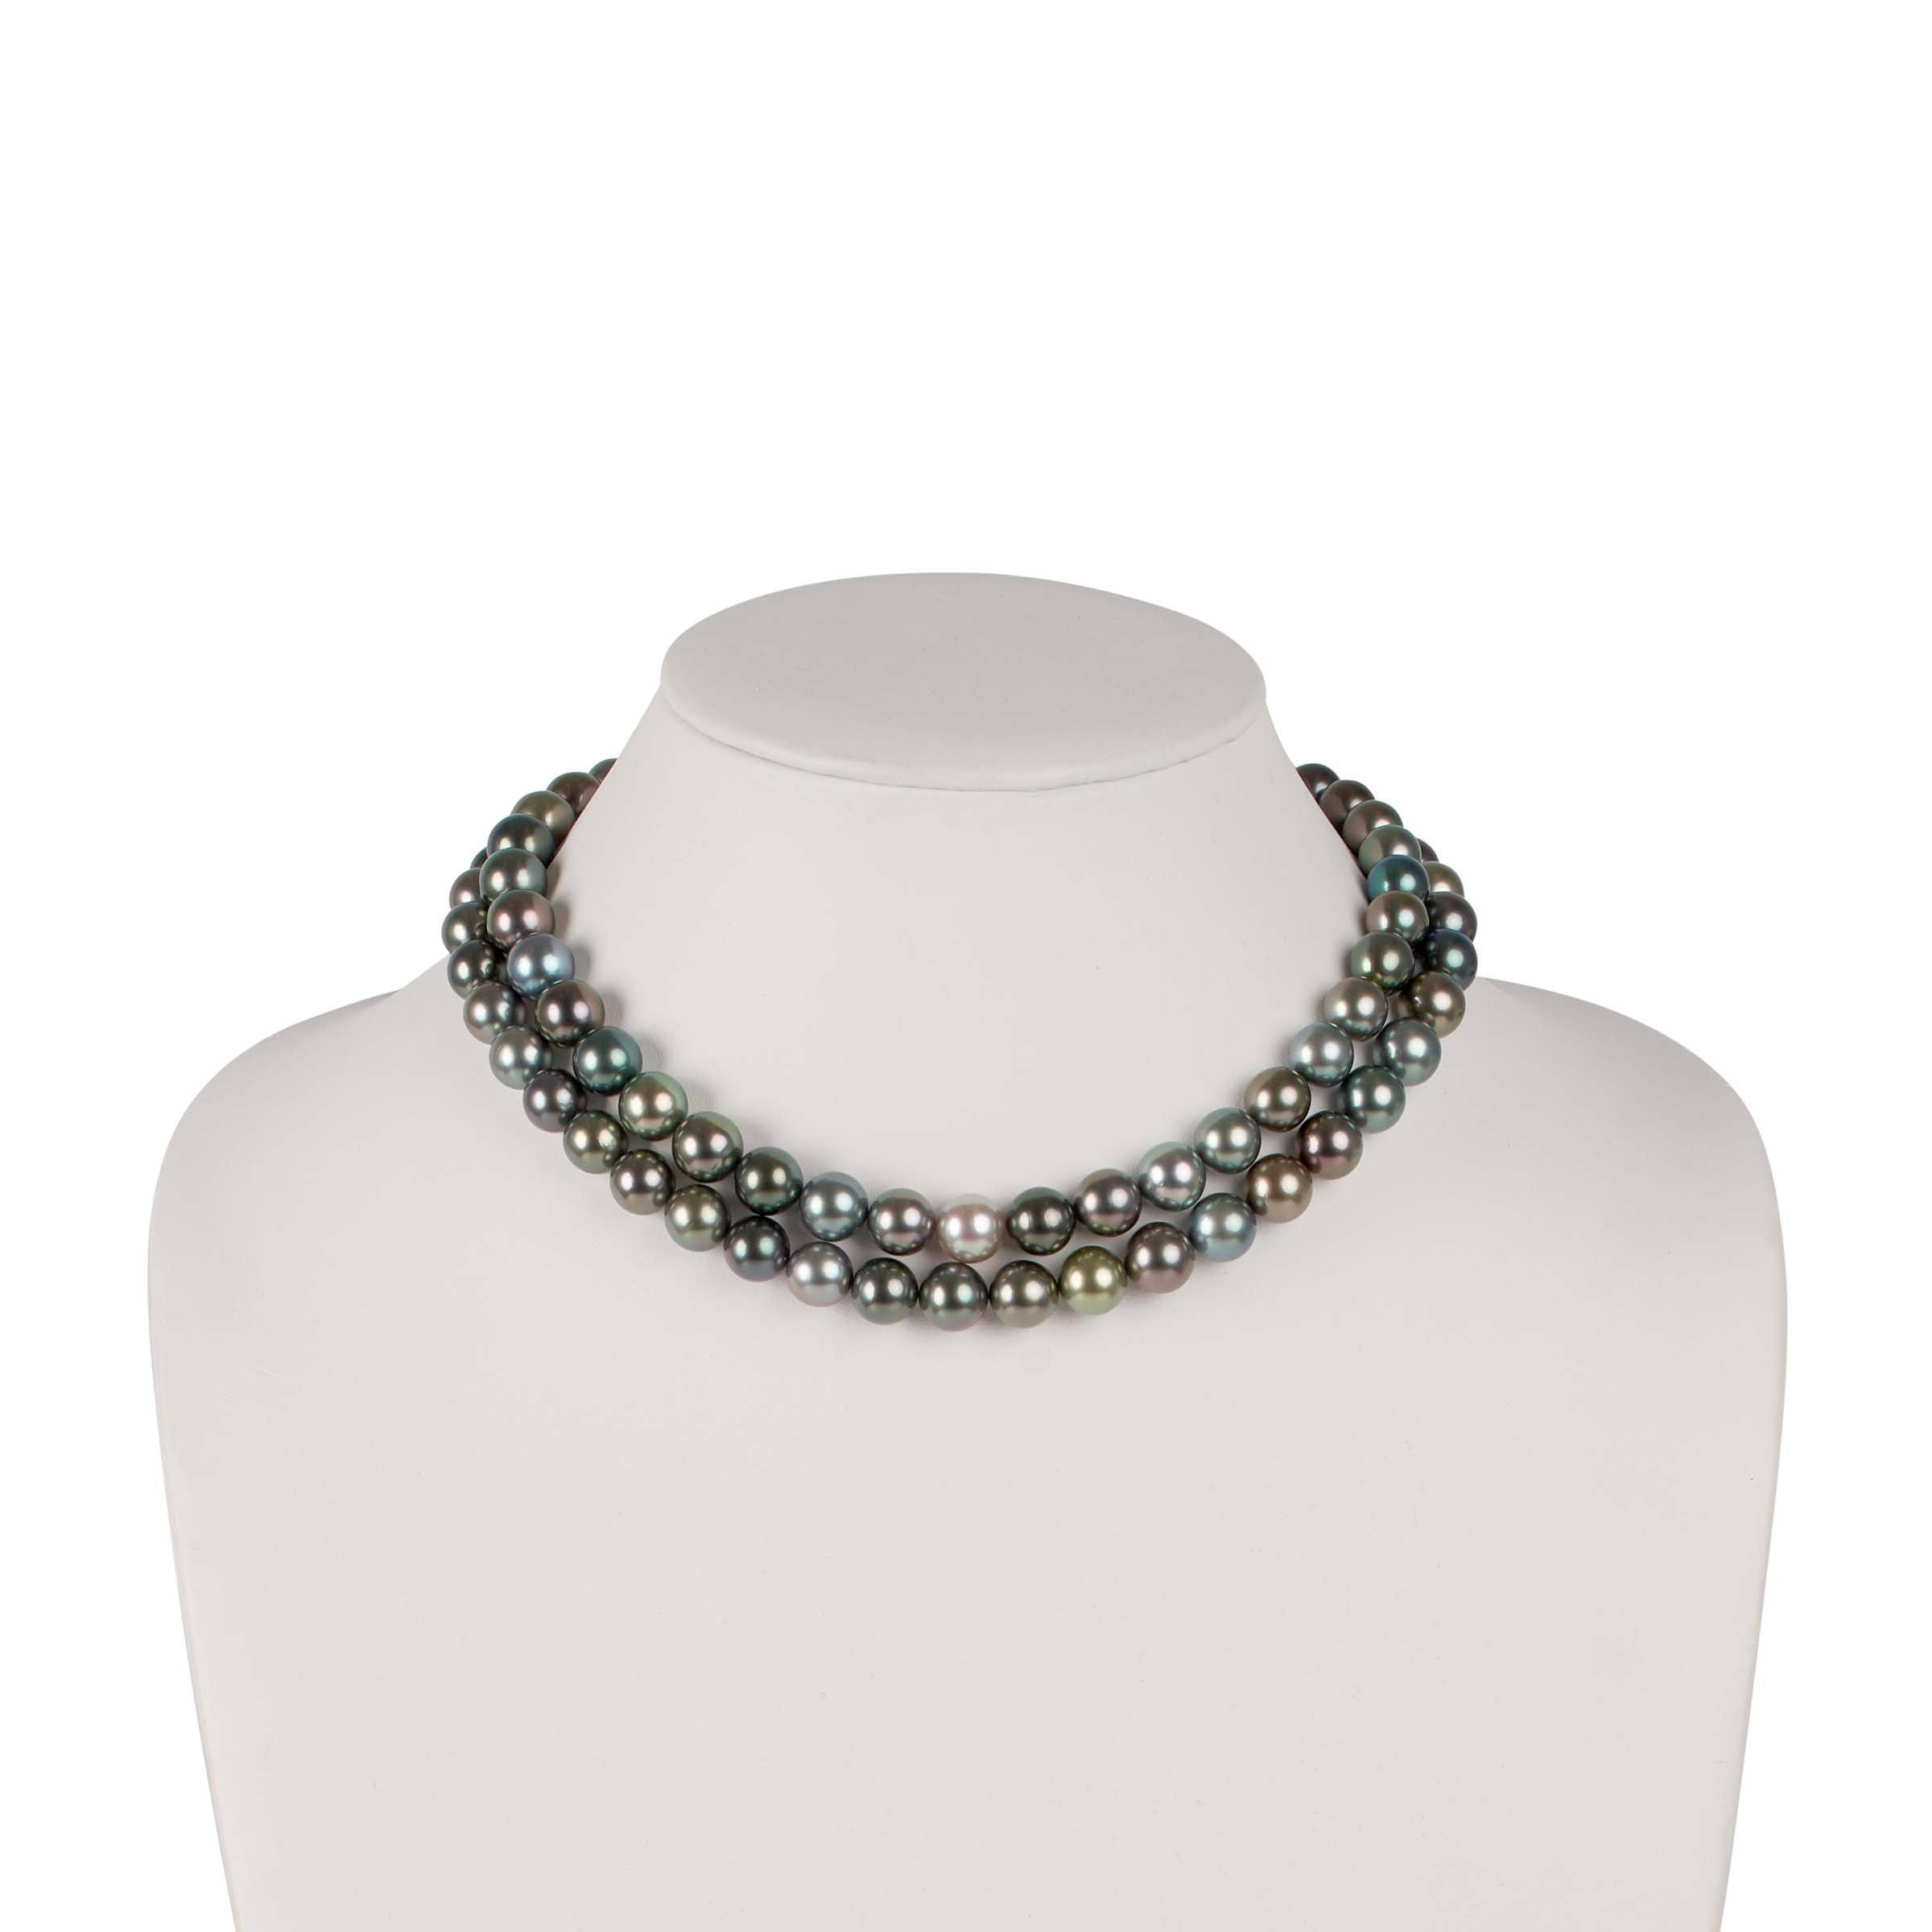 Special 35-inch 9.1-10.9 mm AAA Gem Round Multicolor Tahitian Pearl Necklace